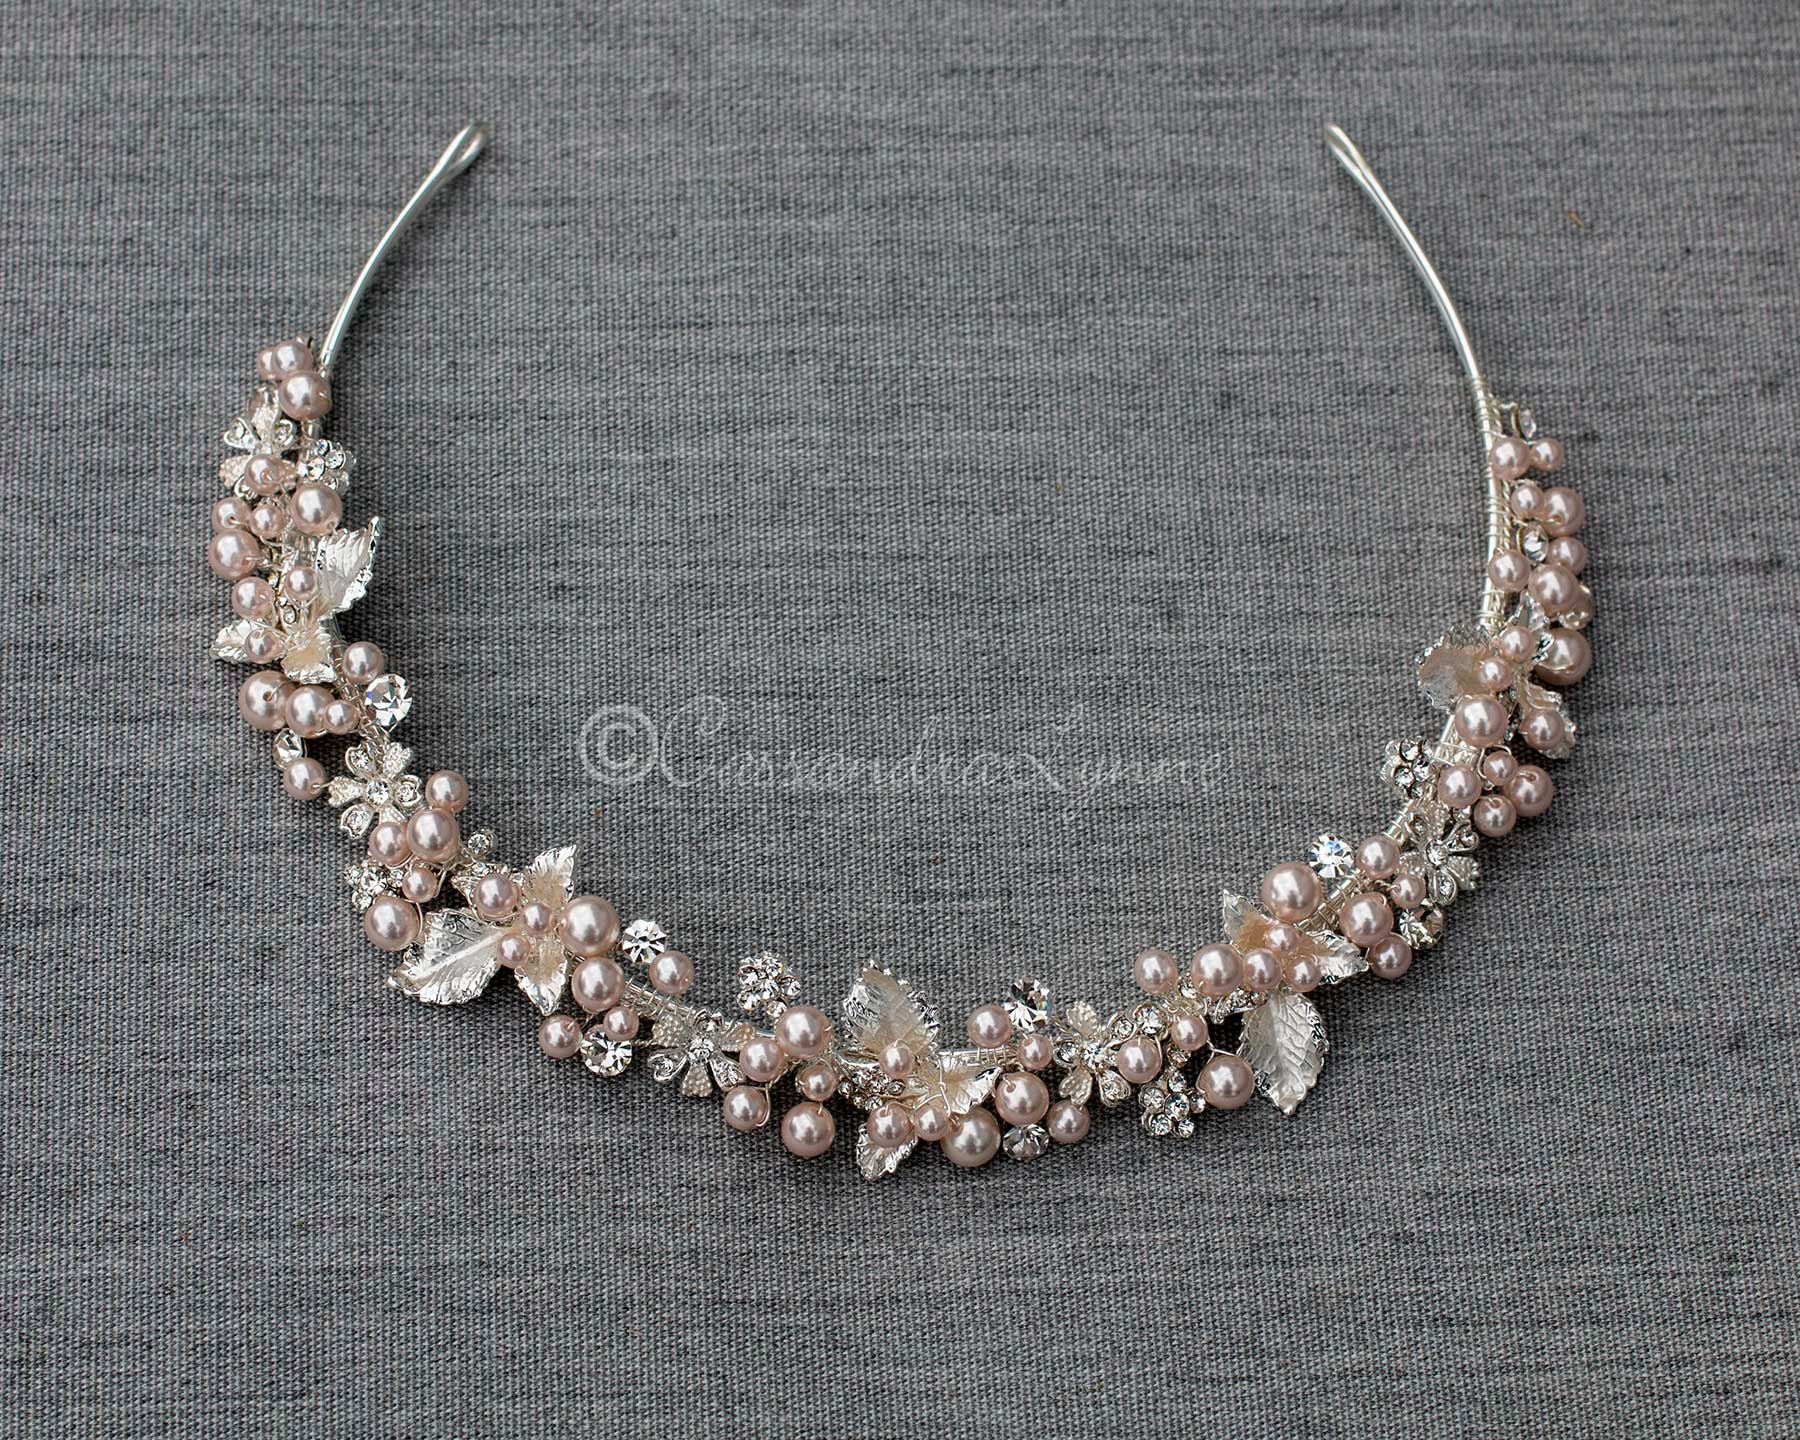 Bridal Headband of Blush Pearls and Leaves